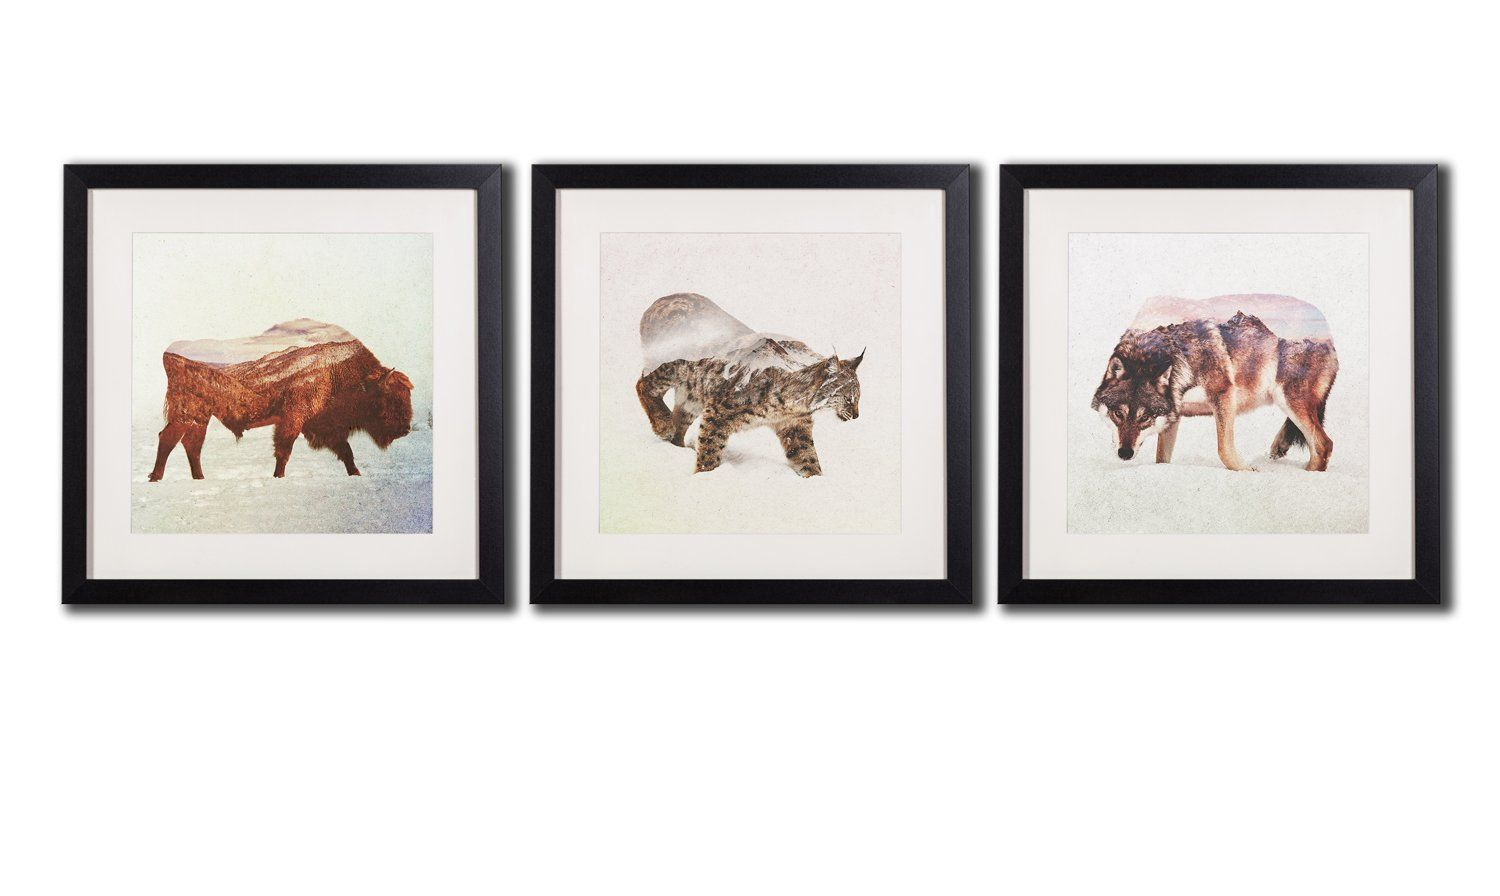 Wolf art wall decor framed little leopard print posters on canvas